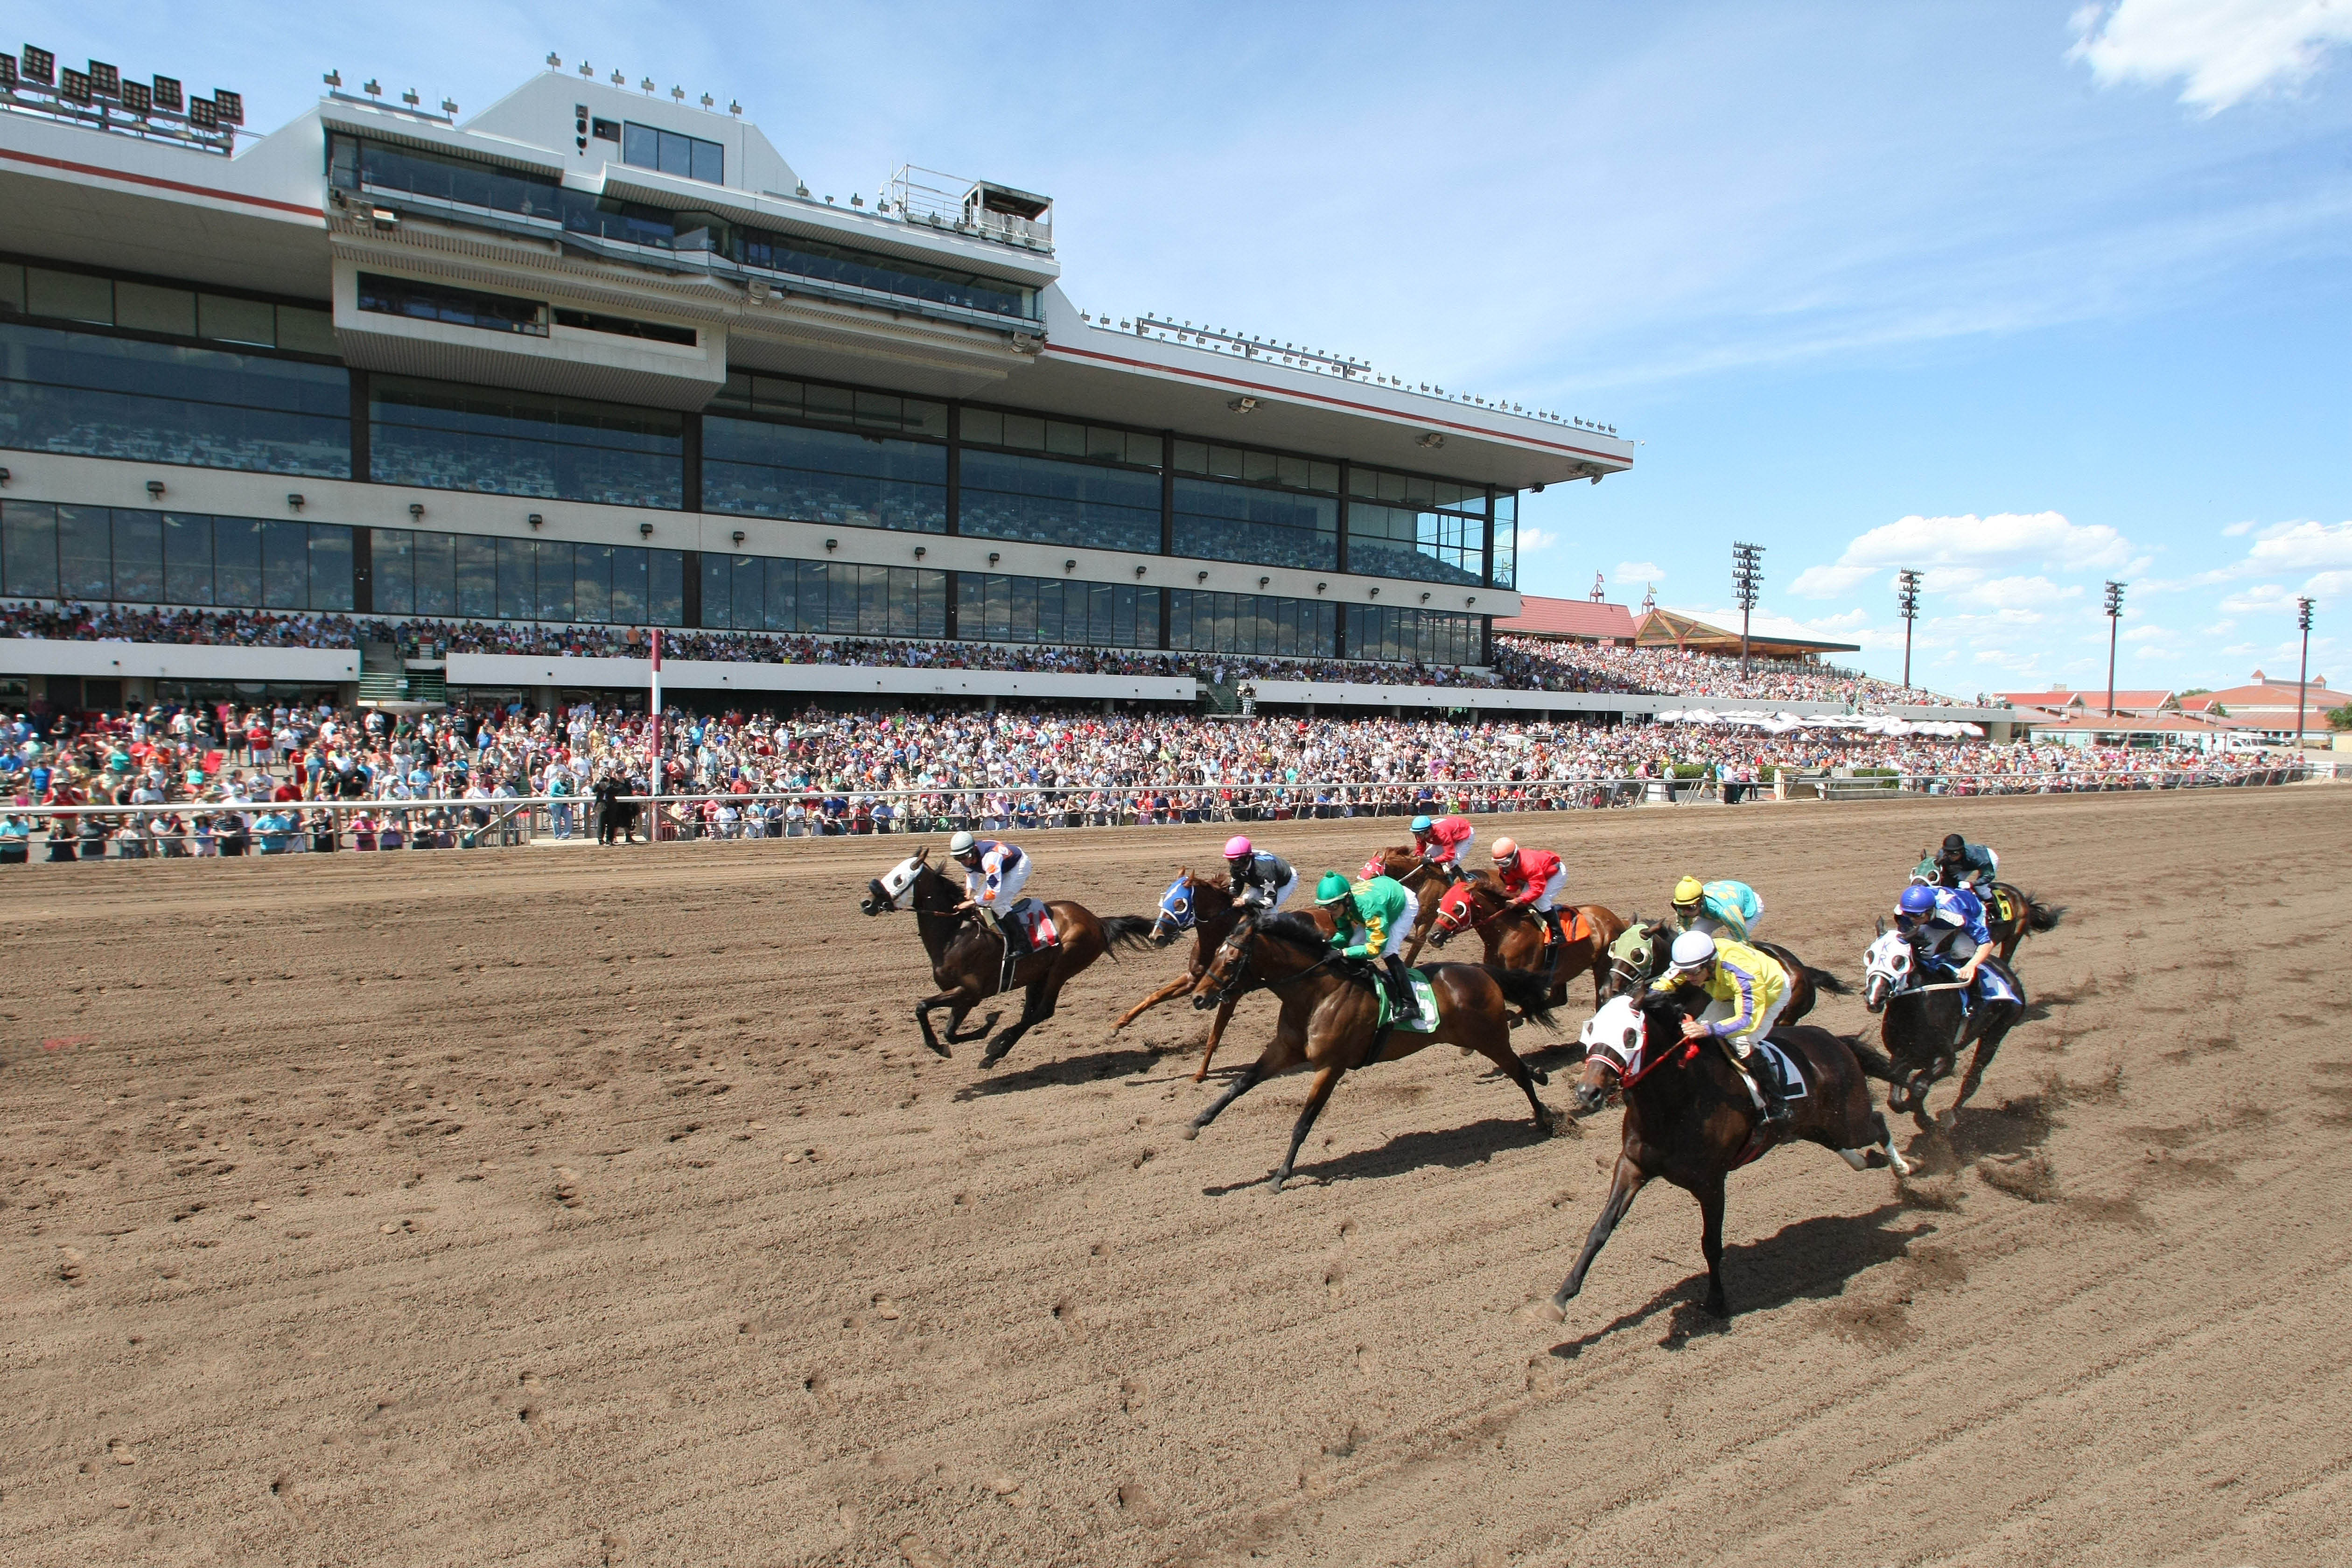 Live Horse Racing Crowd at Canterbury Park in Shakopee, MN